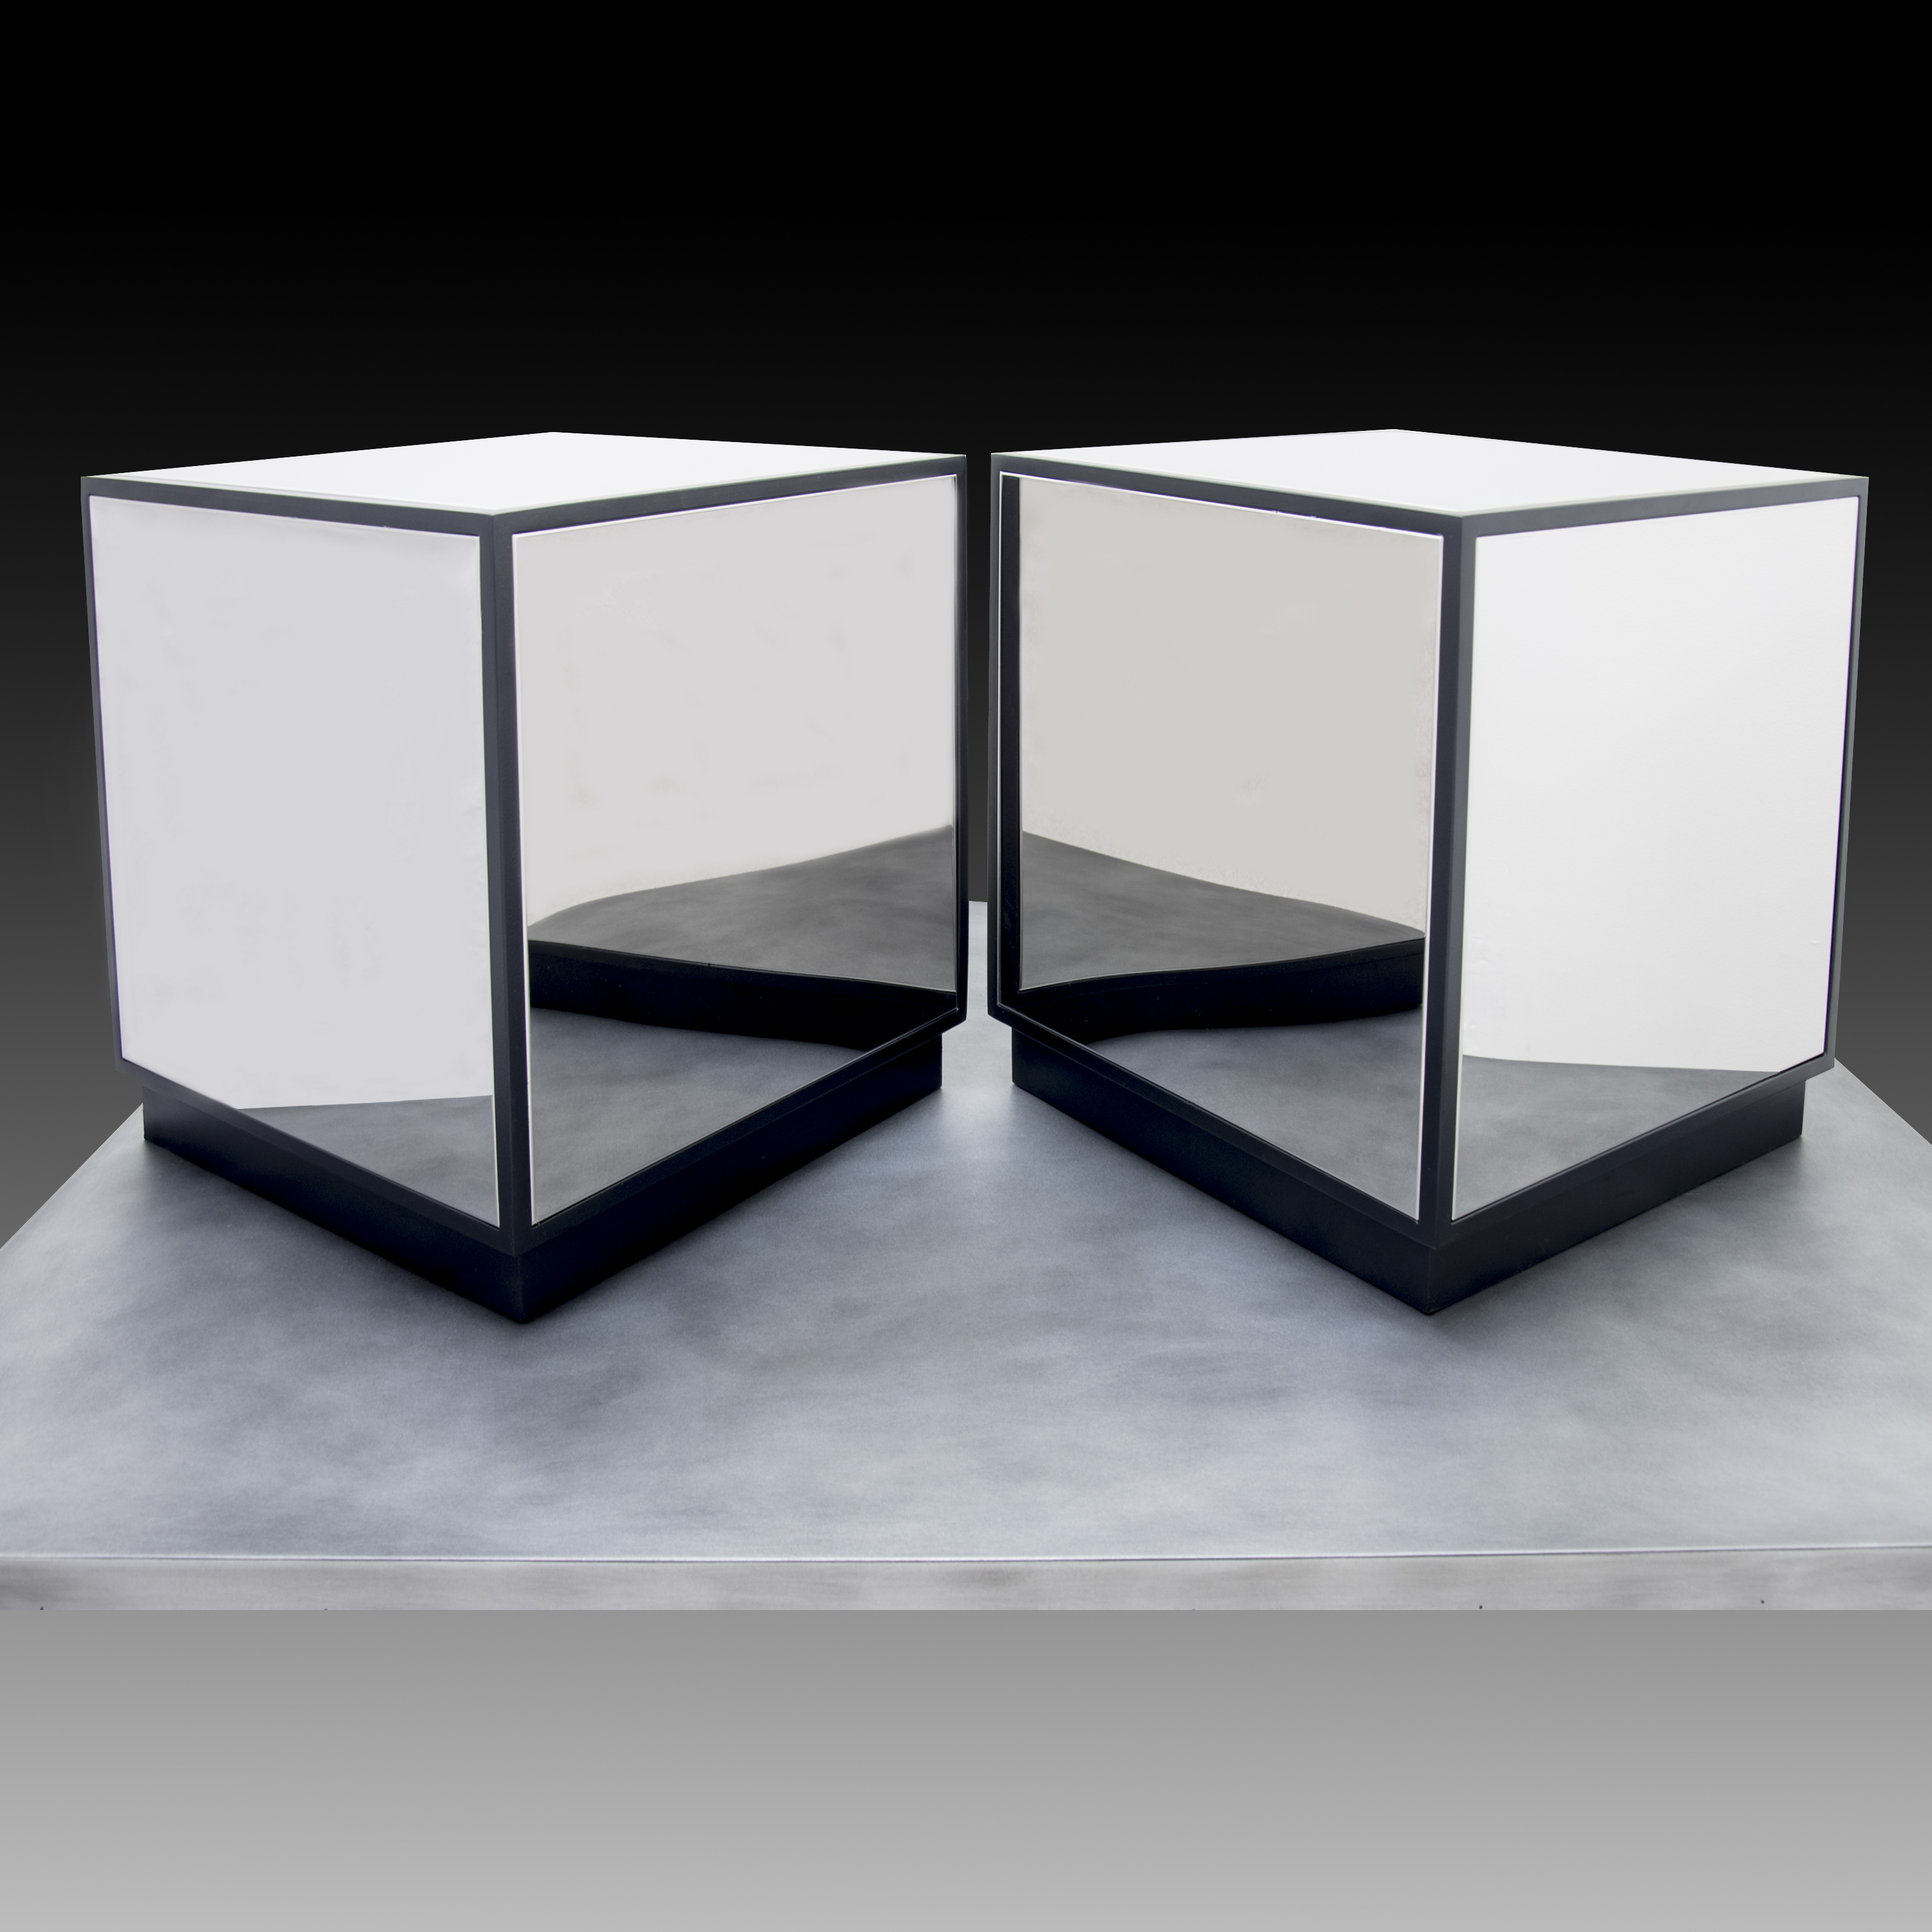 Cube Coffee Table, Polished Stainless Nuevo Living Furniture With Regard To Well Known Carbon Loft Kenyon Natural Rustic Coffee Tables (View 19 of 20)